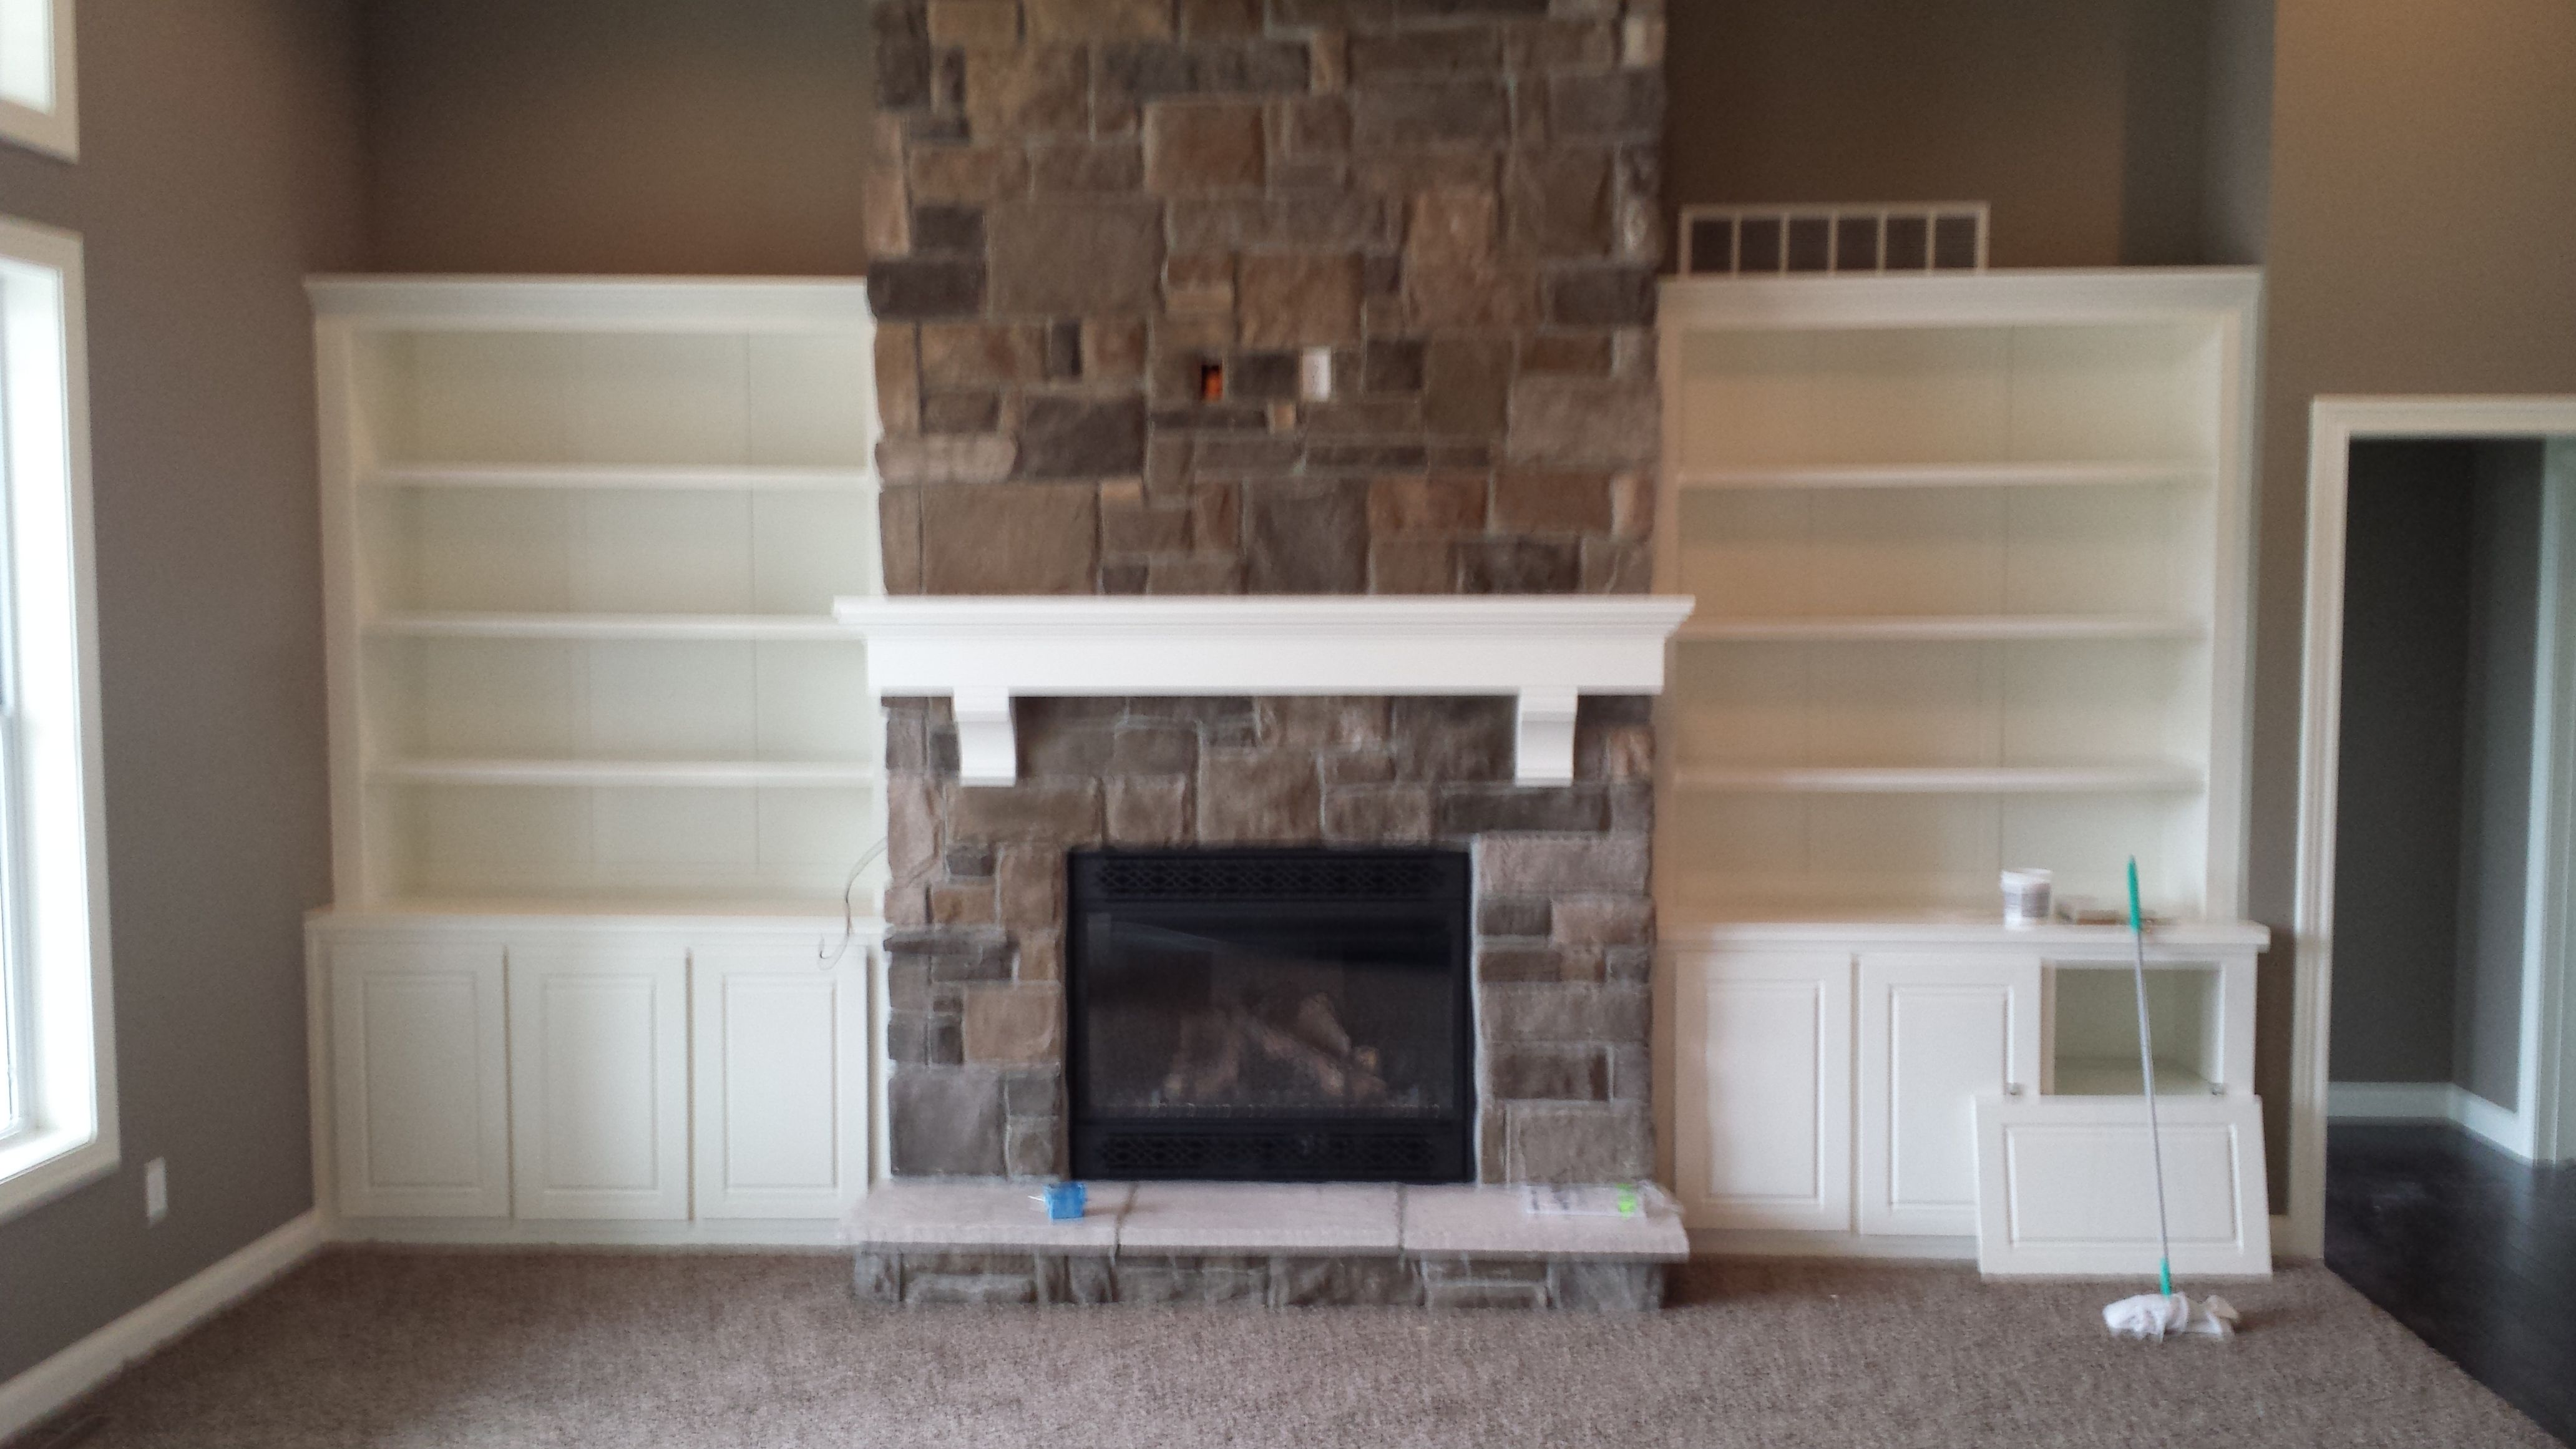 Custom Wood Built Ins Around Fireplace With Shelving And